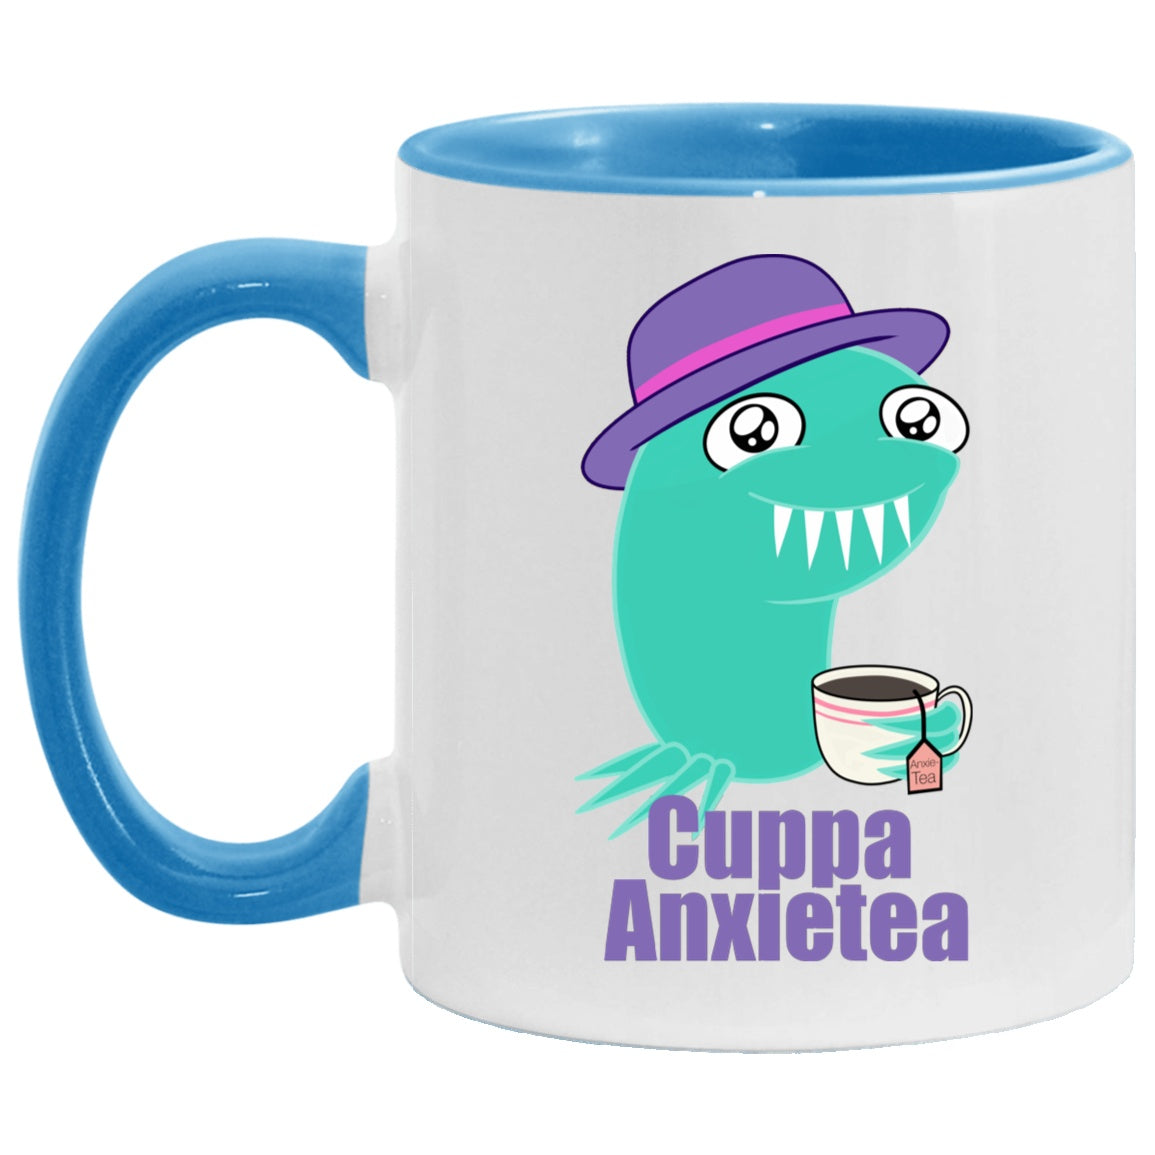 Cuppa Anxietea Mug - The Unchargeables